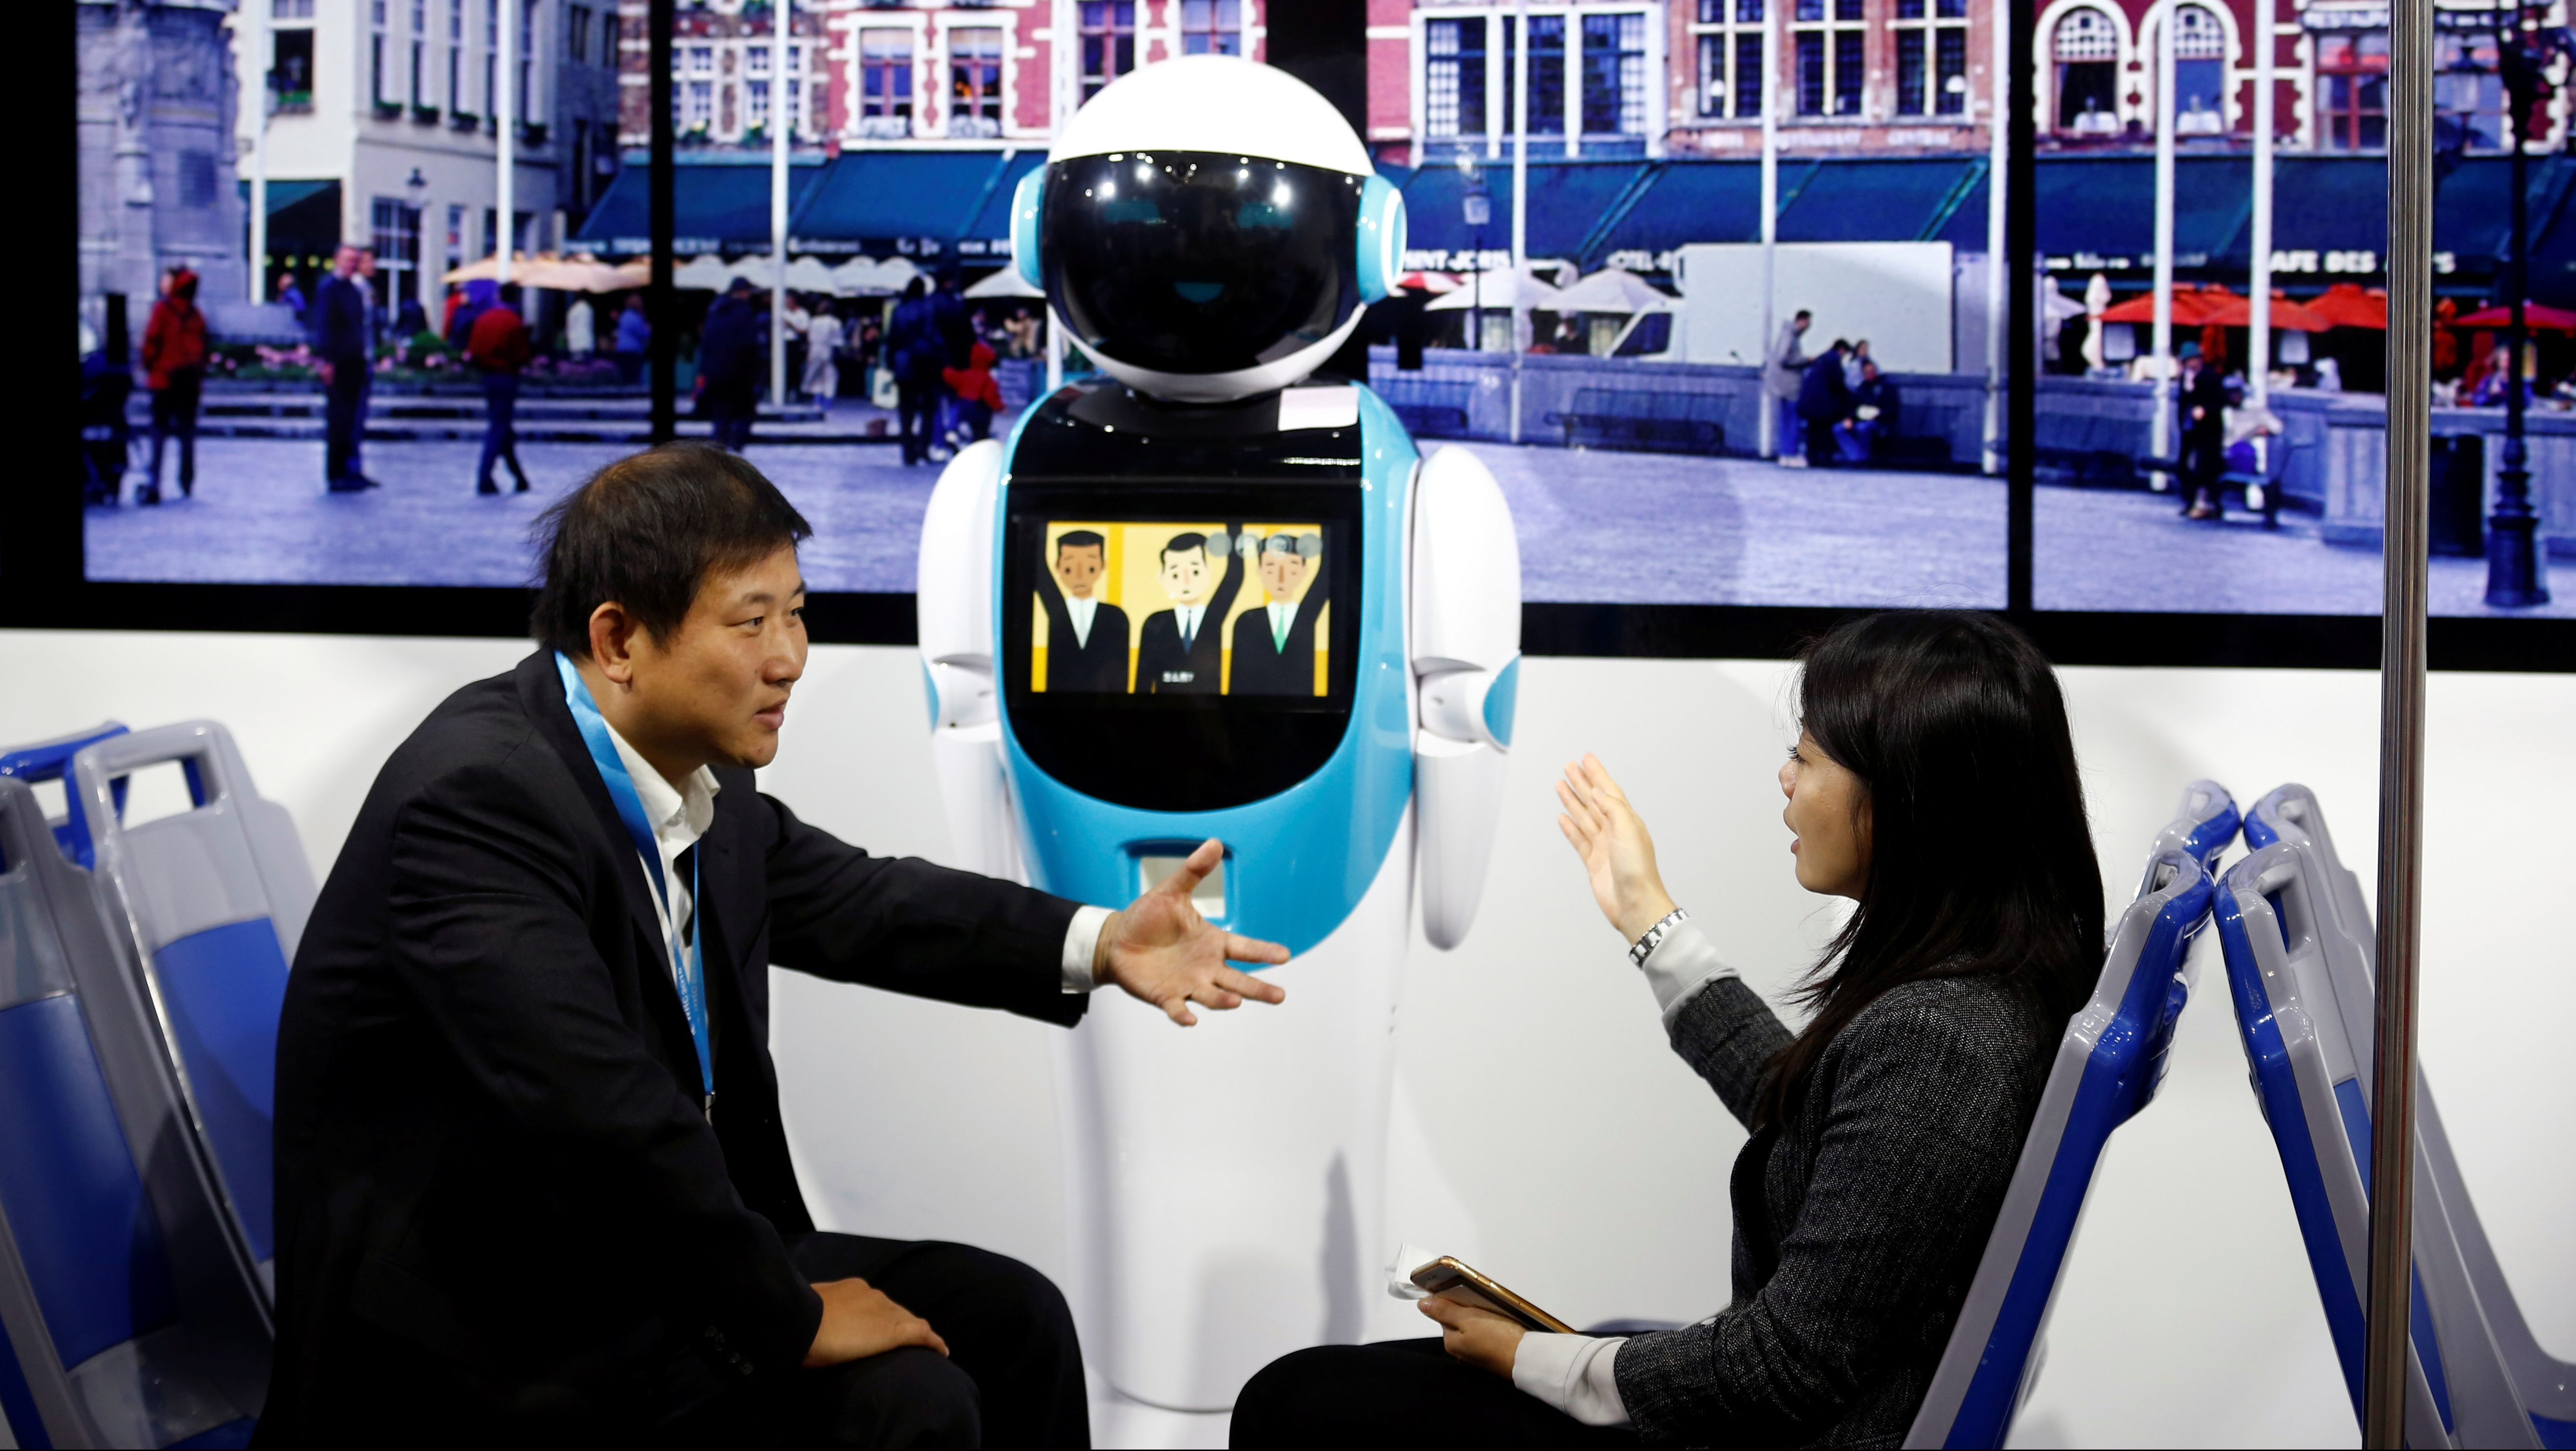 People talk as they sit in front of a robot in a public transport simulator at the WRC 2016 World Robot Conference in Beijing, China, October 21, 2016. REUTERS/Thomas Peter - RTX2PTN8